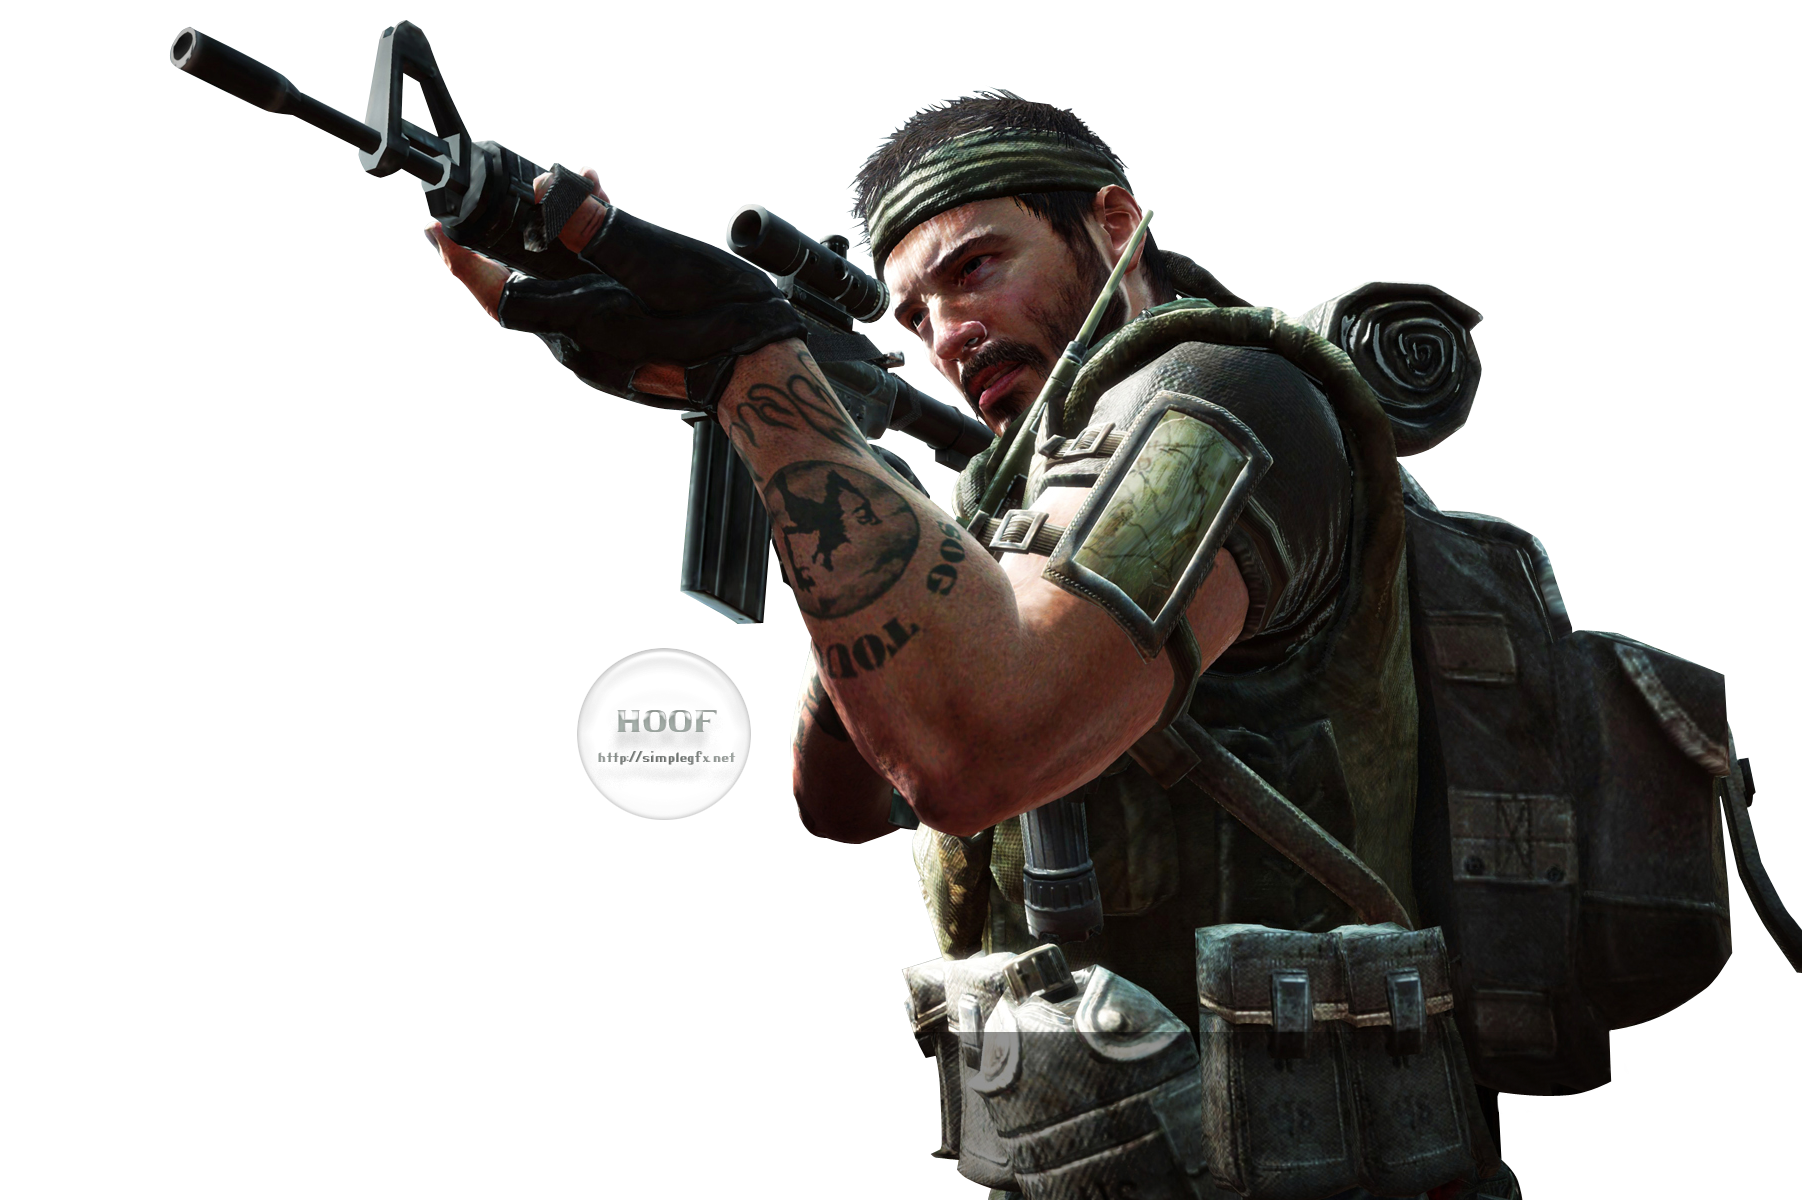 Download Call Of Duty PNG Images Transparent Gallery. Advertisement - Call Of Duty PNG